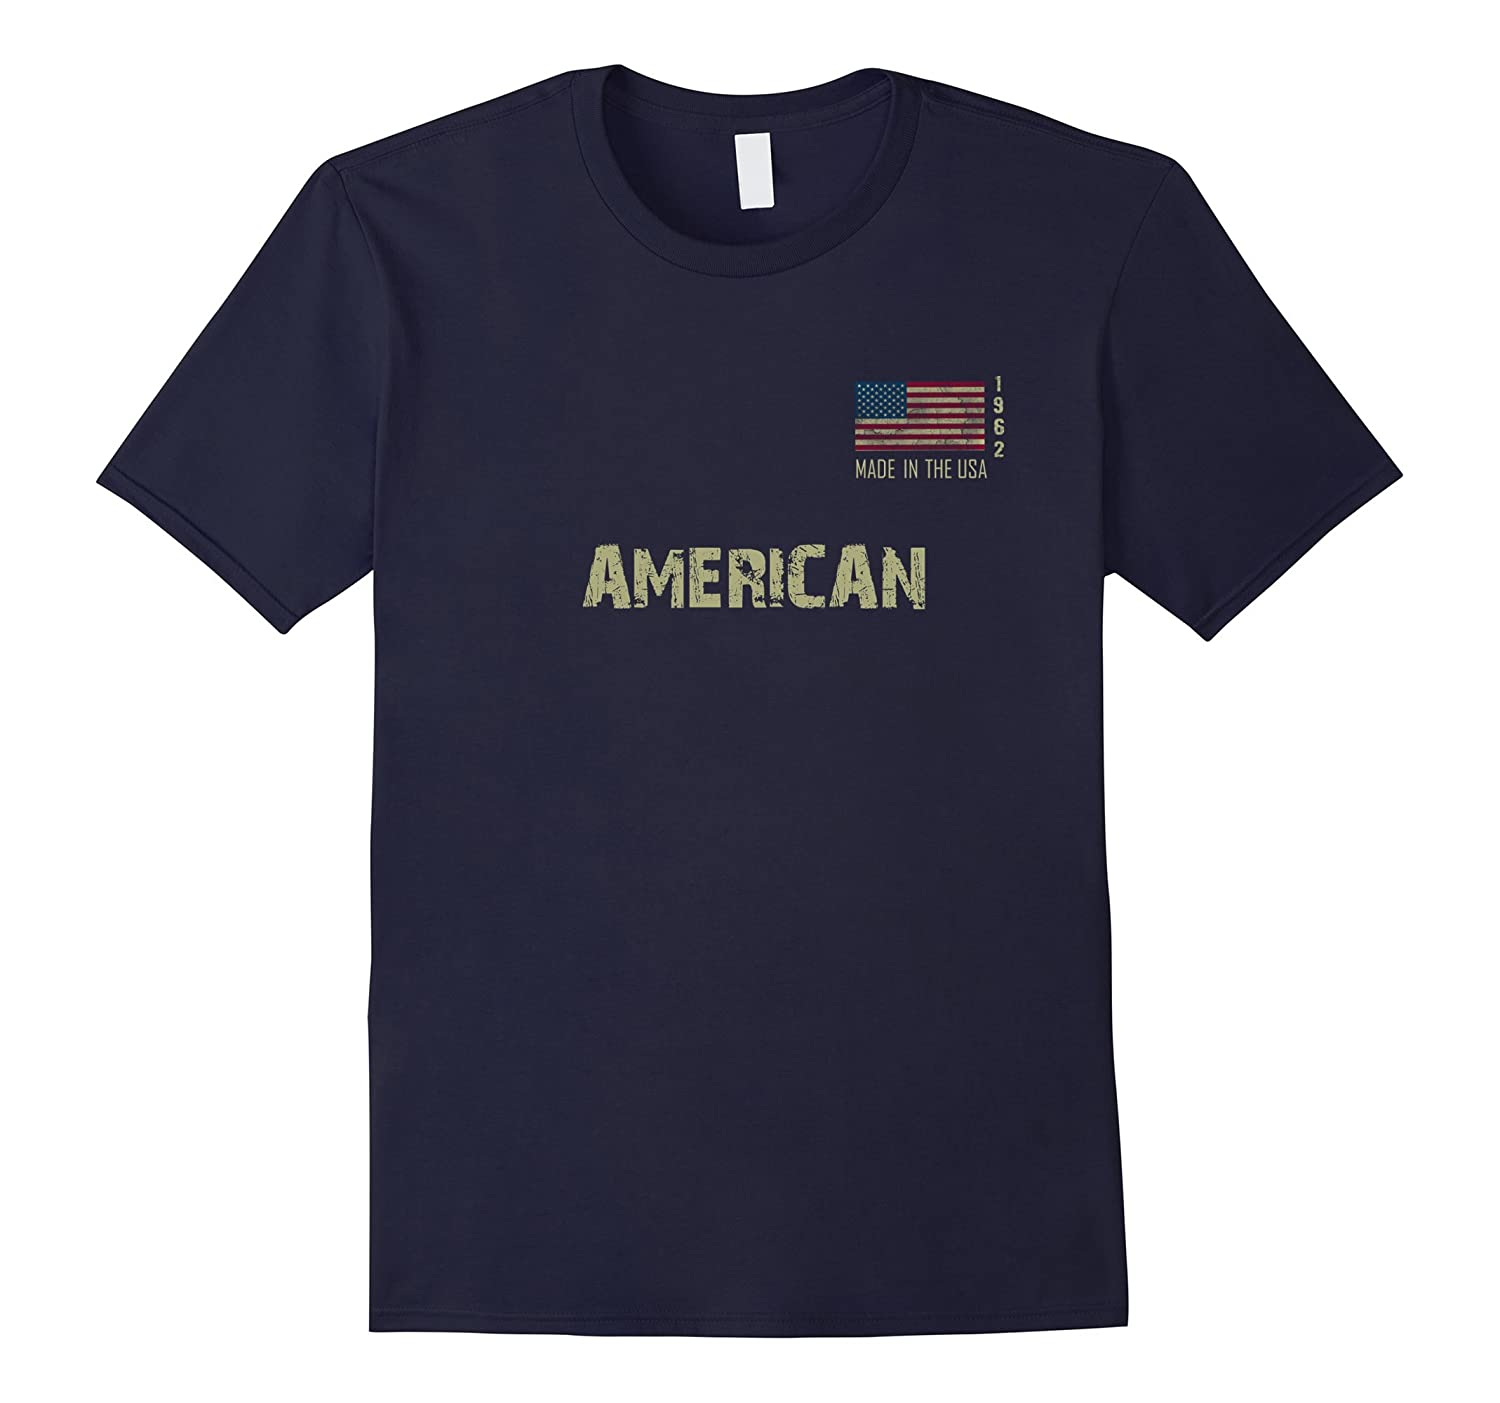 1962 AMERICAN 55th Birthday MADE IN USA Gift T-shirt-TJ